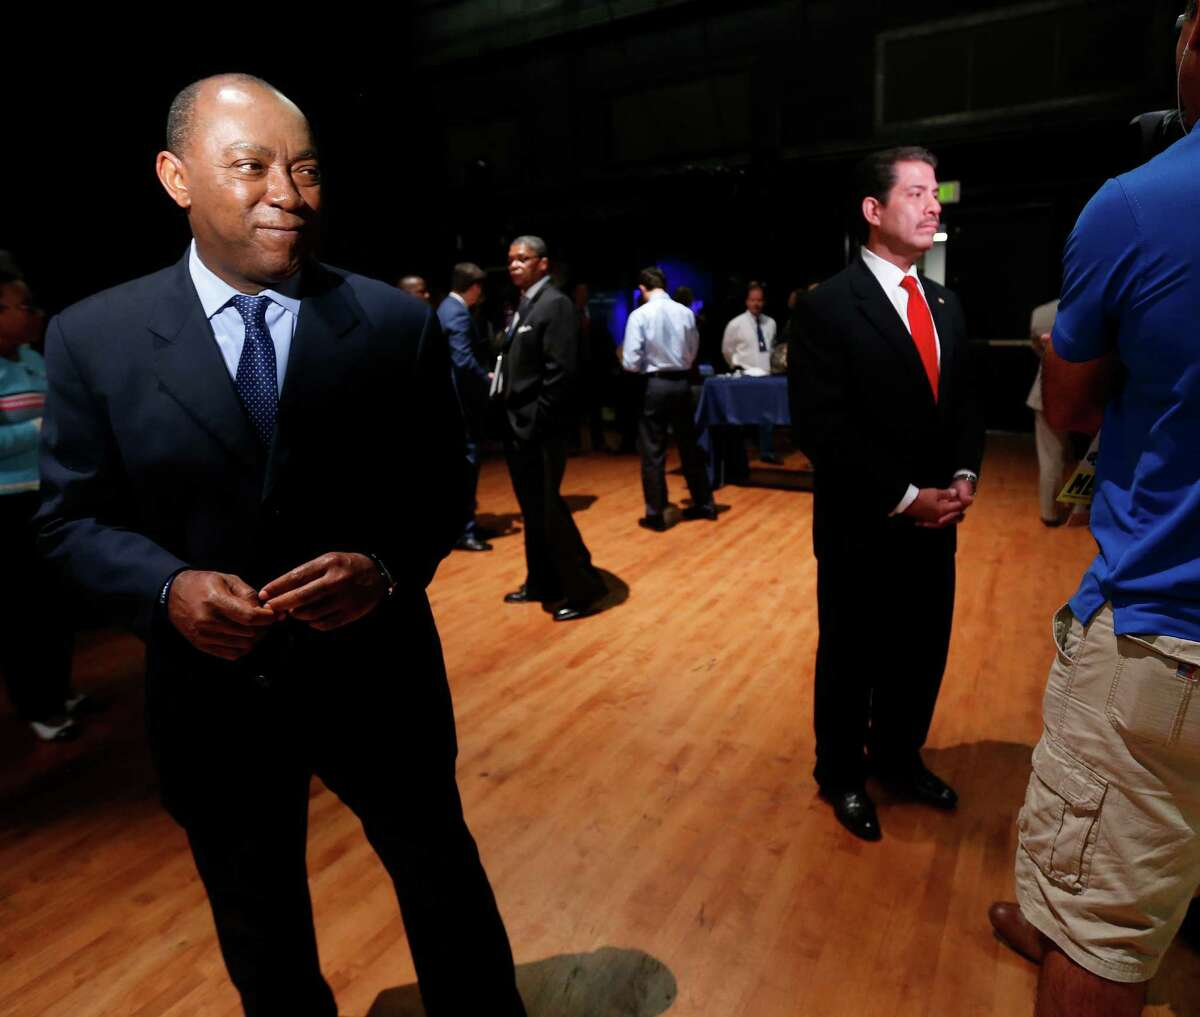 Mayoral candidate Sylvester Turner, waits his turn as Adrian Garcia does his one-on-one interview with the media after the Houston Mayoral debate at the Hobby Center on Thursday, Sept. 10, 2015. Both Garcia and Turner lead in new survey, with 19 percent each.